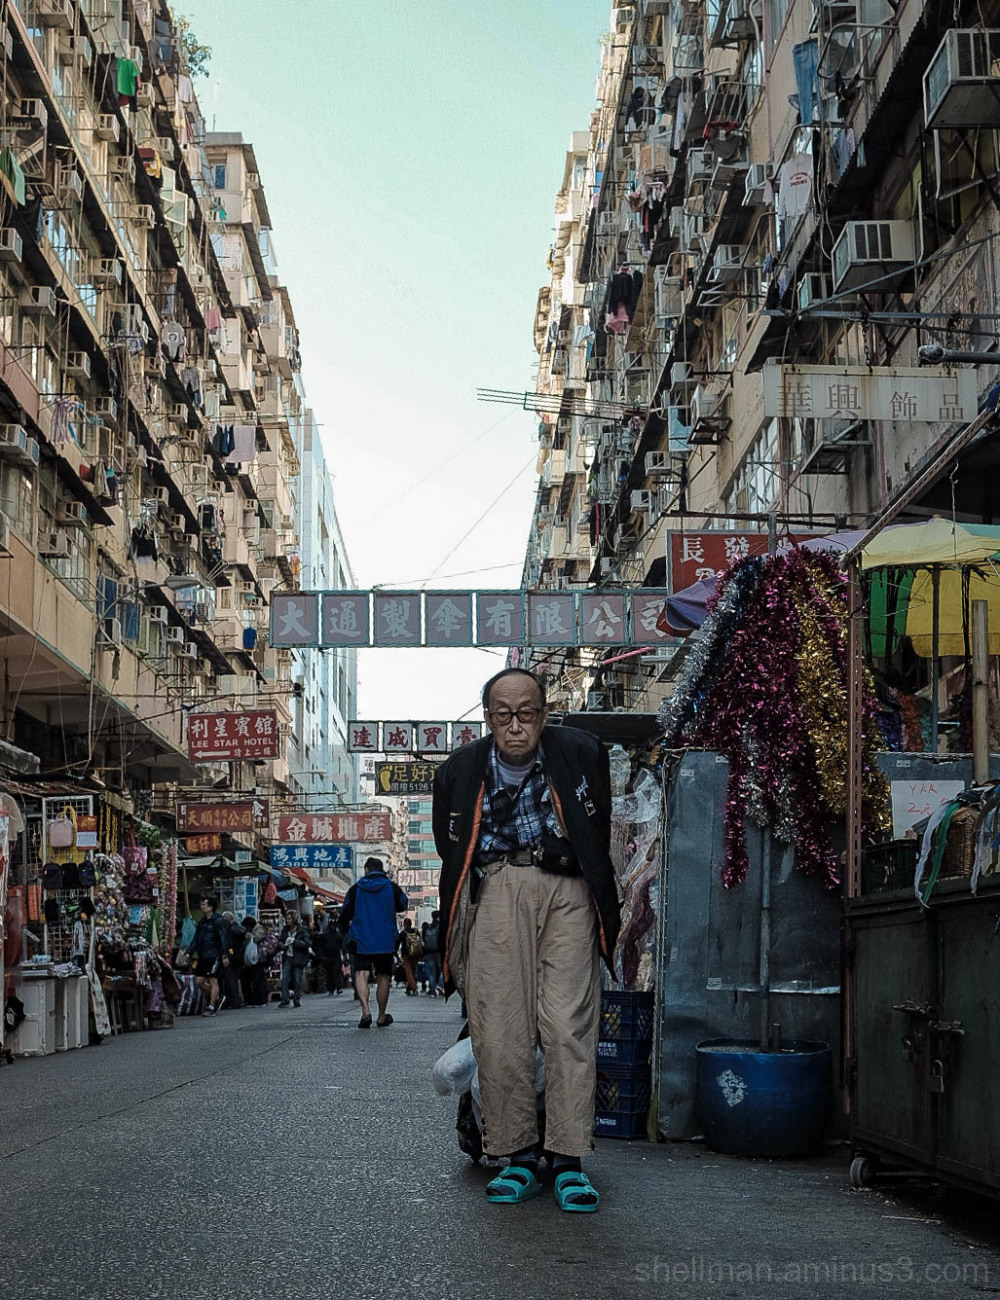 Shopping in Sham Shui Po